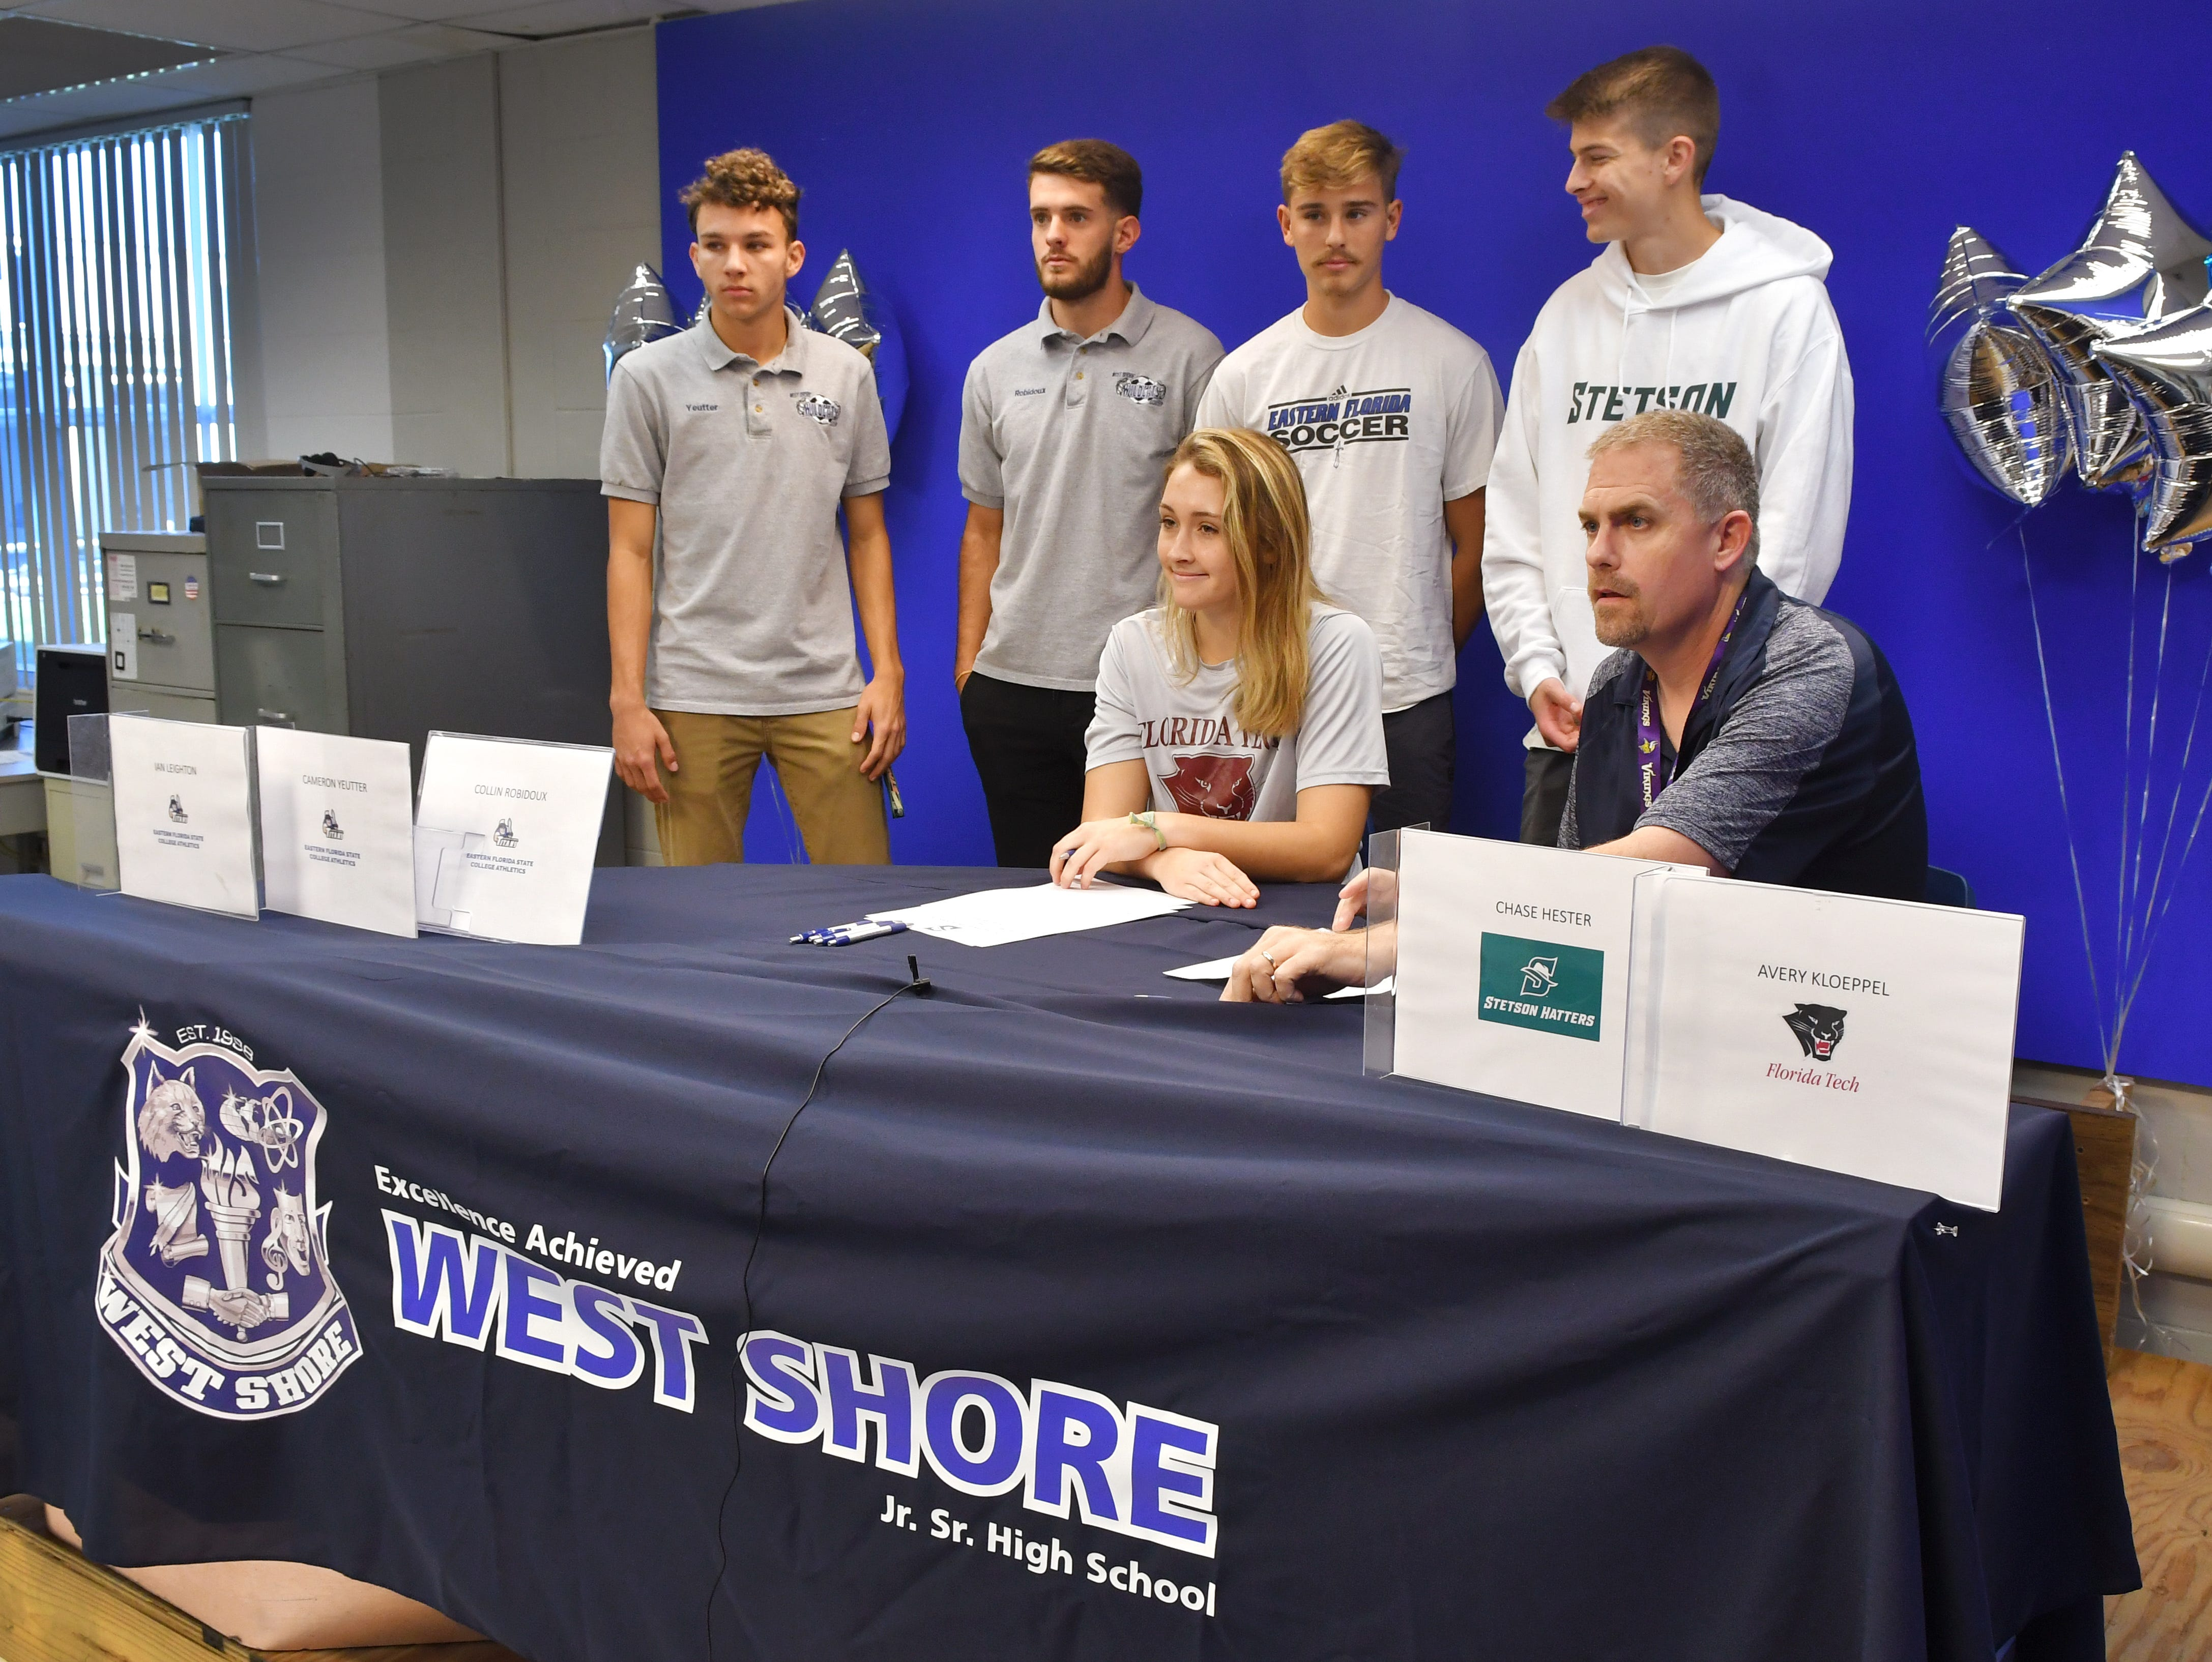 Five soccer athletes from West Shore Junior/Senior High School in Melbourne signed letters of intent on Wednesday. Seated is Avery Kloeppel, Florida Tech, with West Shore Athletic Director Tony Rioppelle. Standing, left to right, is Cameron Yeutter, Collin Robidoux and Ian Leighton, all for Eastern Florida State College, and Chase Hester, for Stetson University.